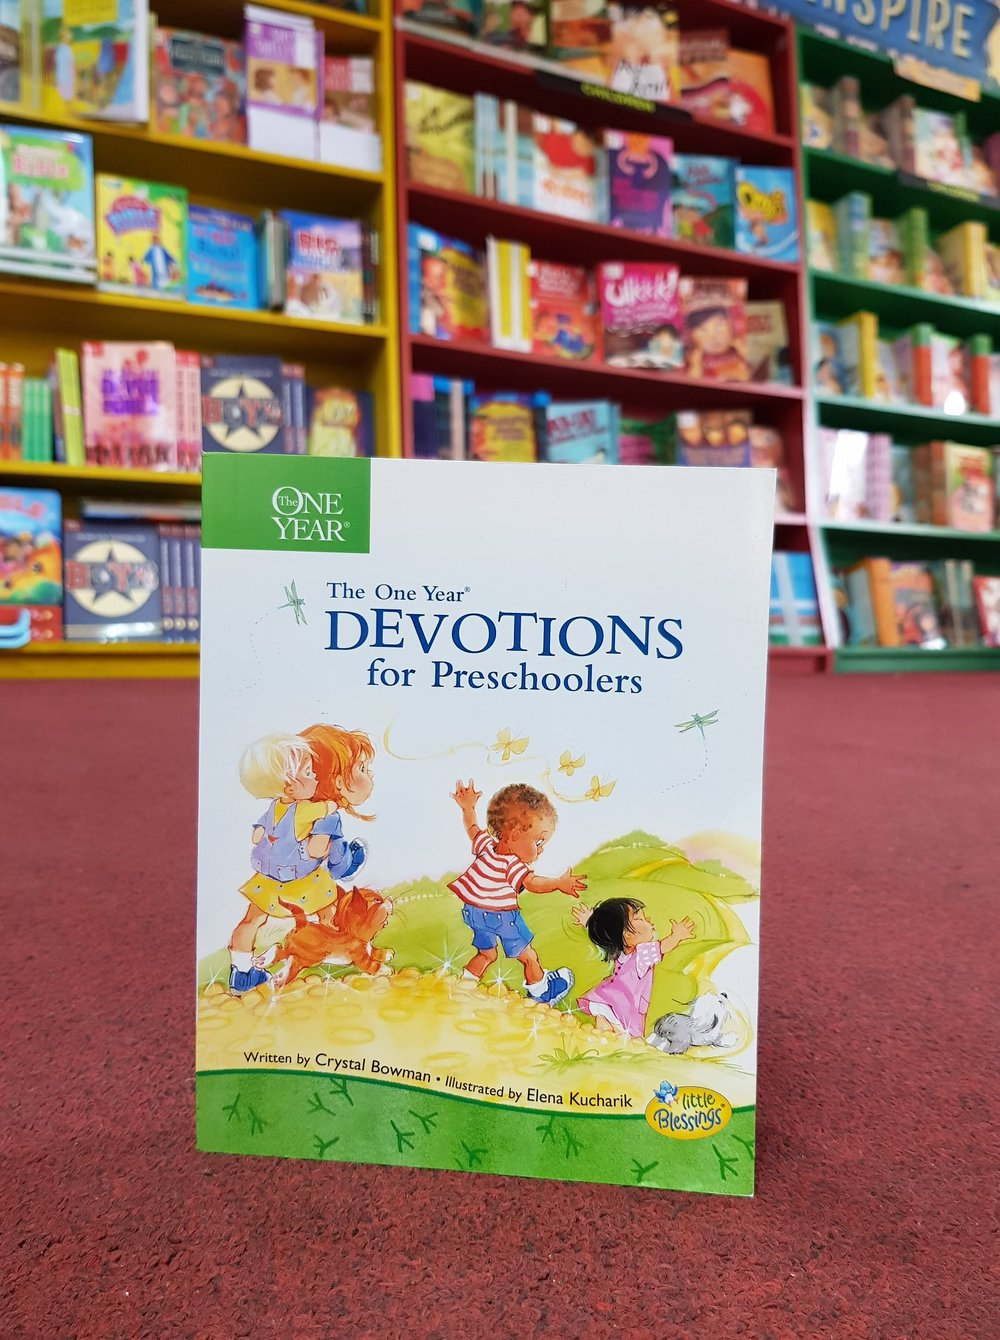 one year devotions for preschoolers .jpg